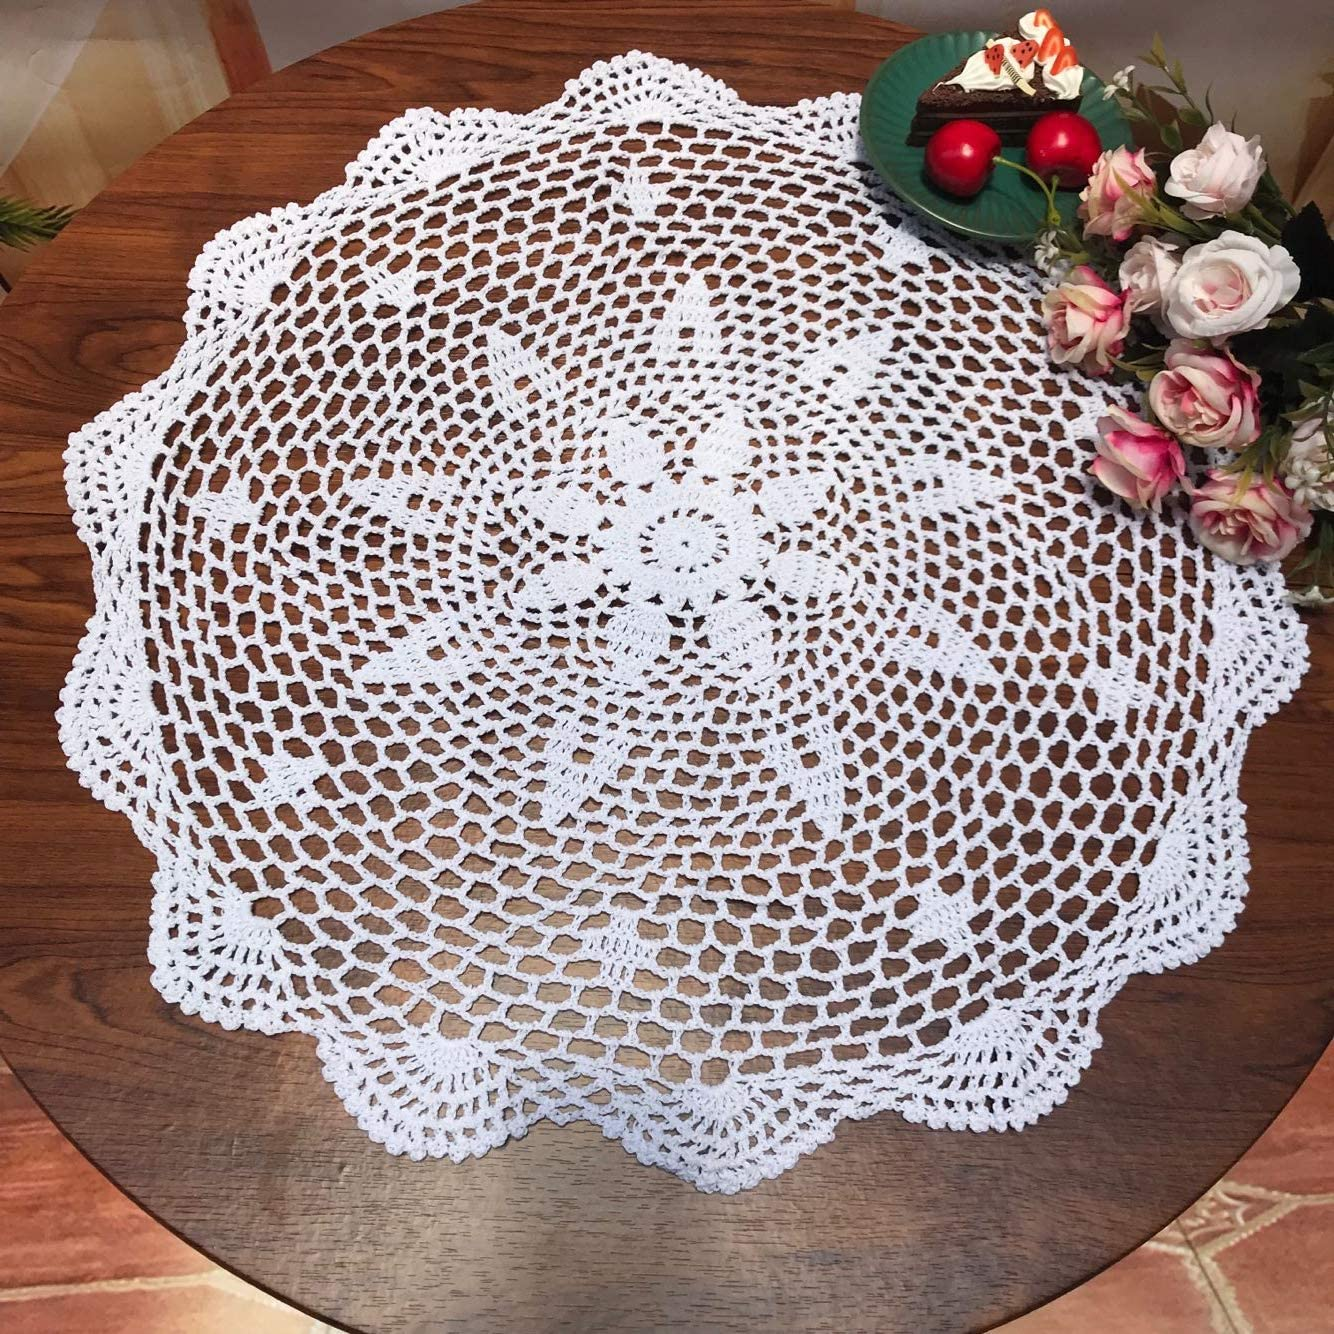 Damanni Cotton Handmade Crochet Lace Tablecloth Doilies Doily,Round,White,19 Inch